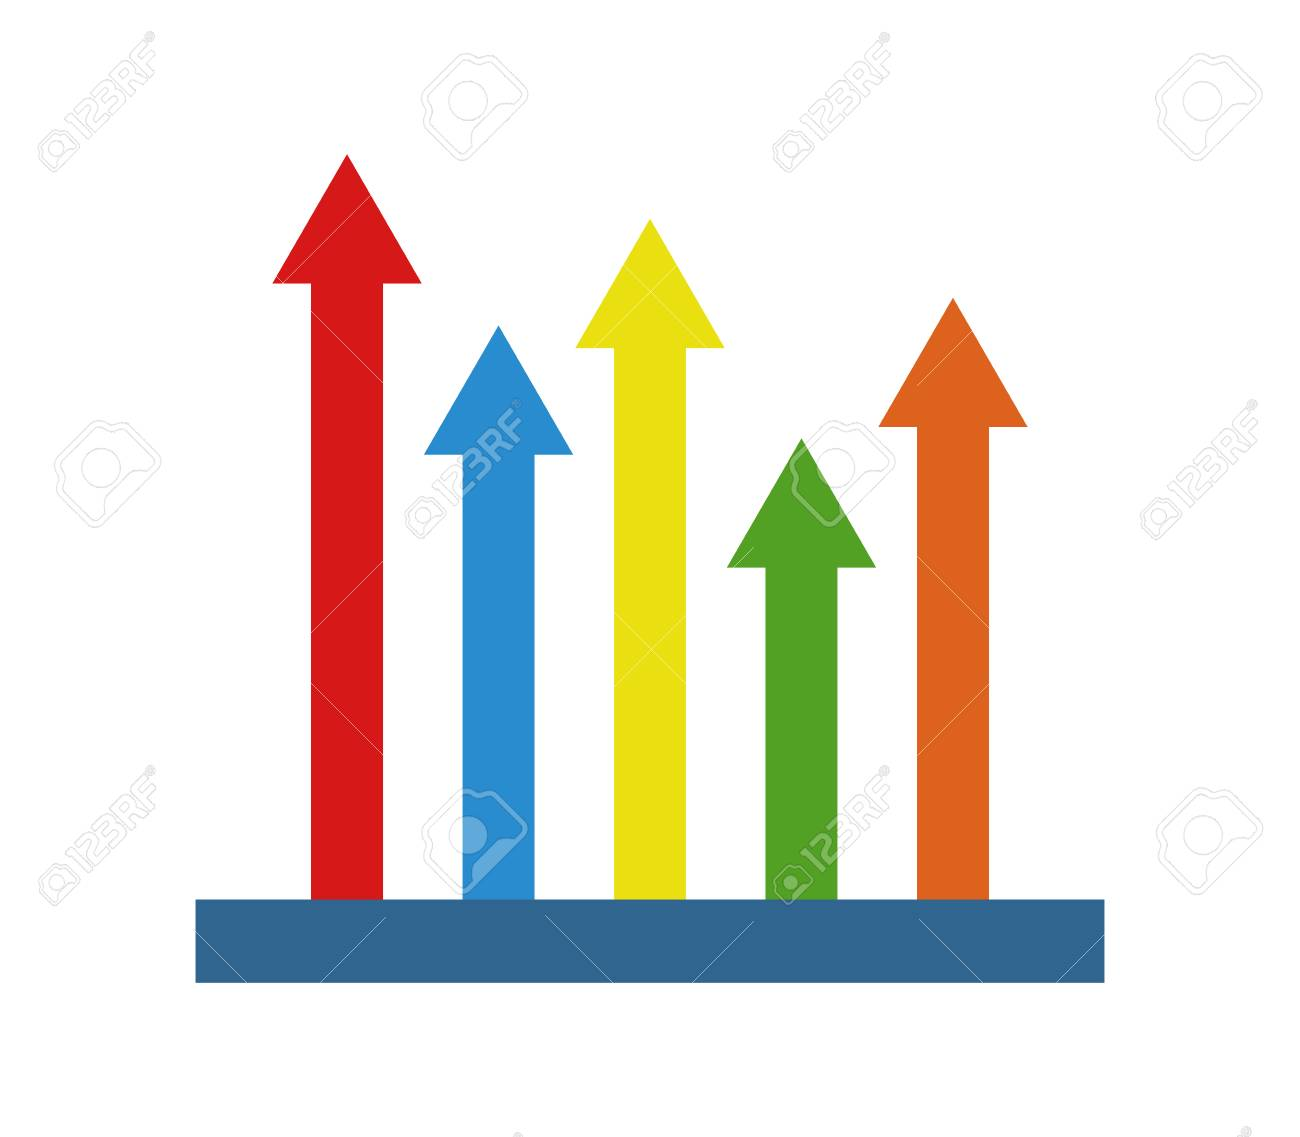 analytic colored arrow pointing up icon royalty free cliparts